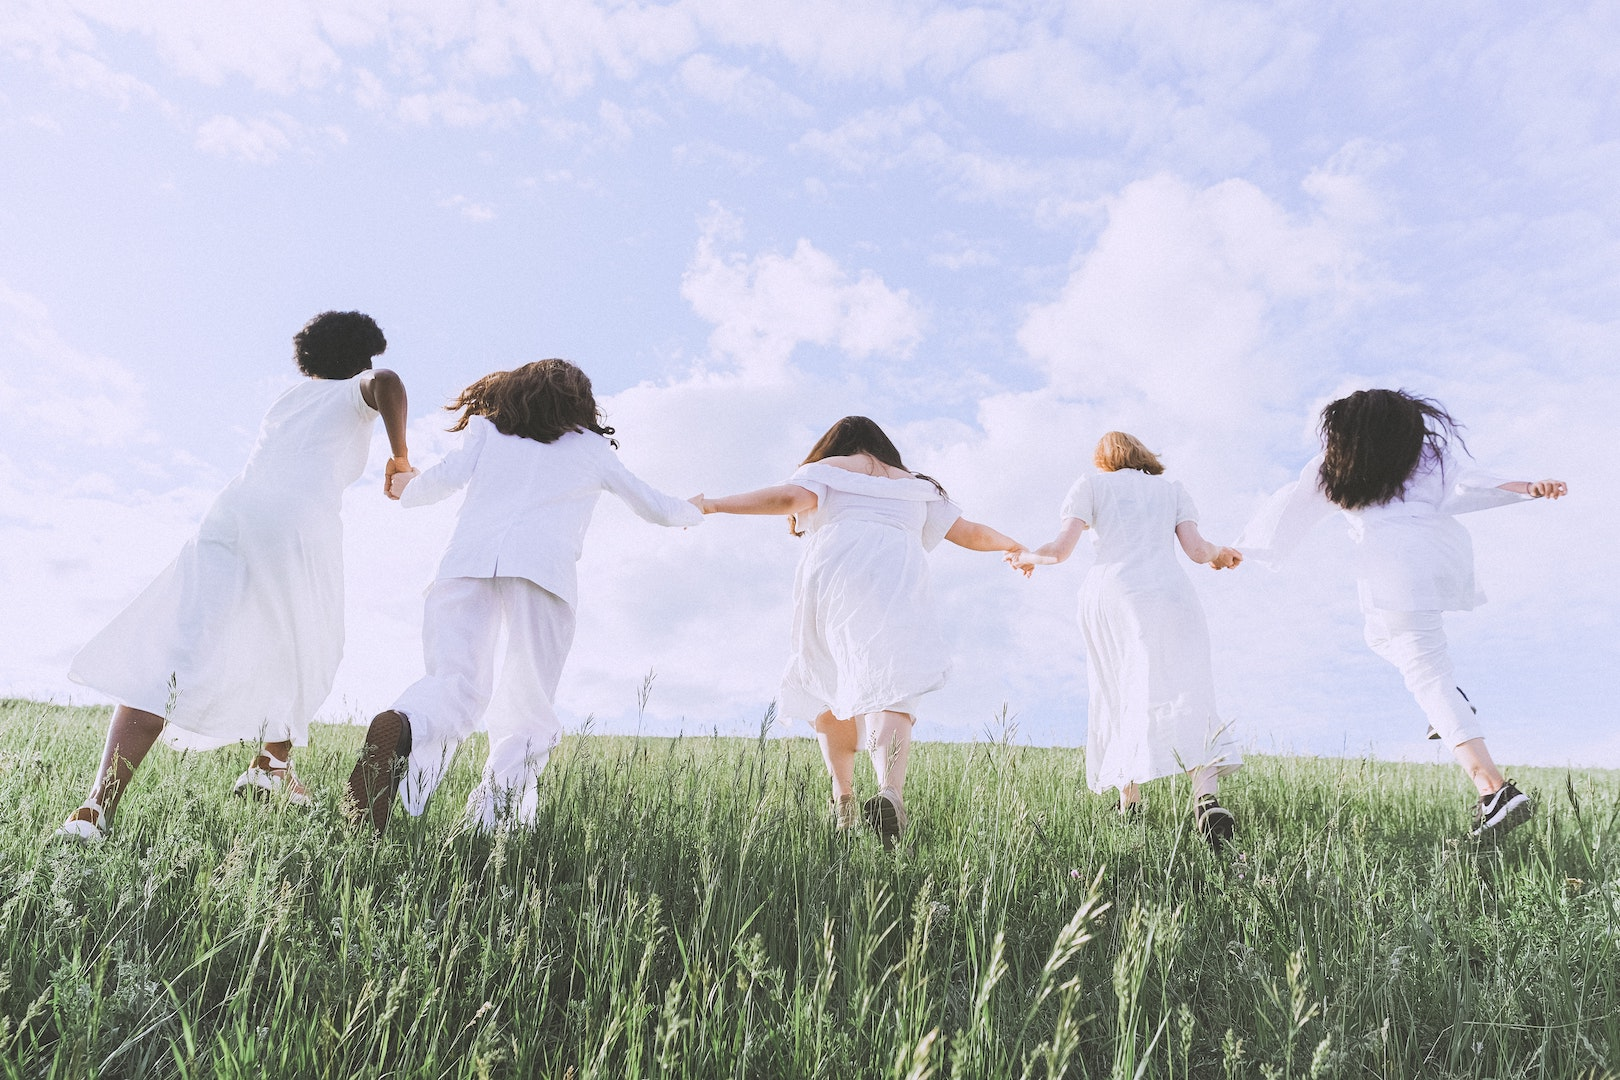 Image of a group of teenagers wearing white running through a field. TEDxMileHigh.